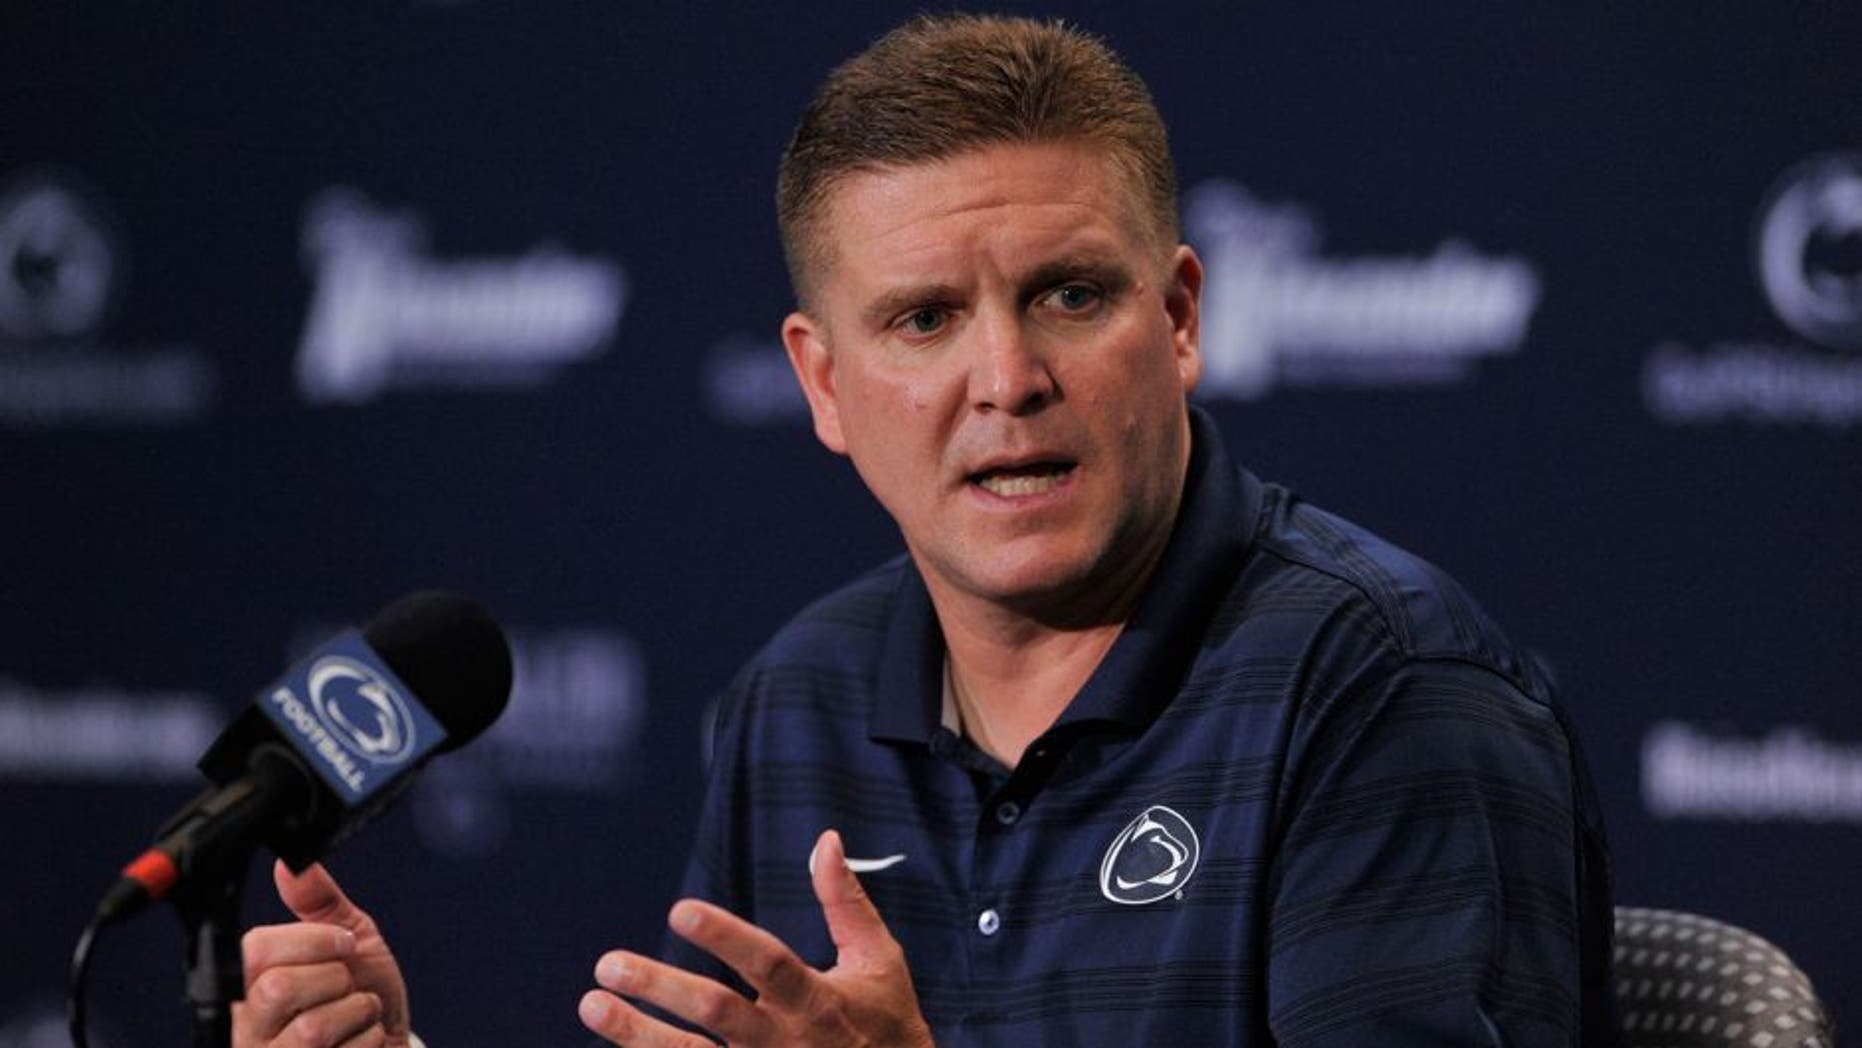 Penn State defensive coordinator Bob Shoop talks to reporters during media day at Beaver Stadium in University Park, Pa., on Thursday, Aug. 6, 2015. (Nabil K. Mark/Centre Daily Times/TNS via Getty Images)